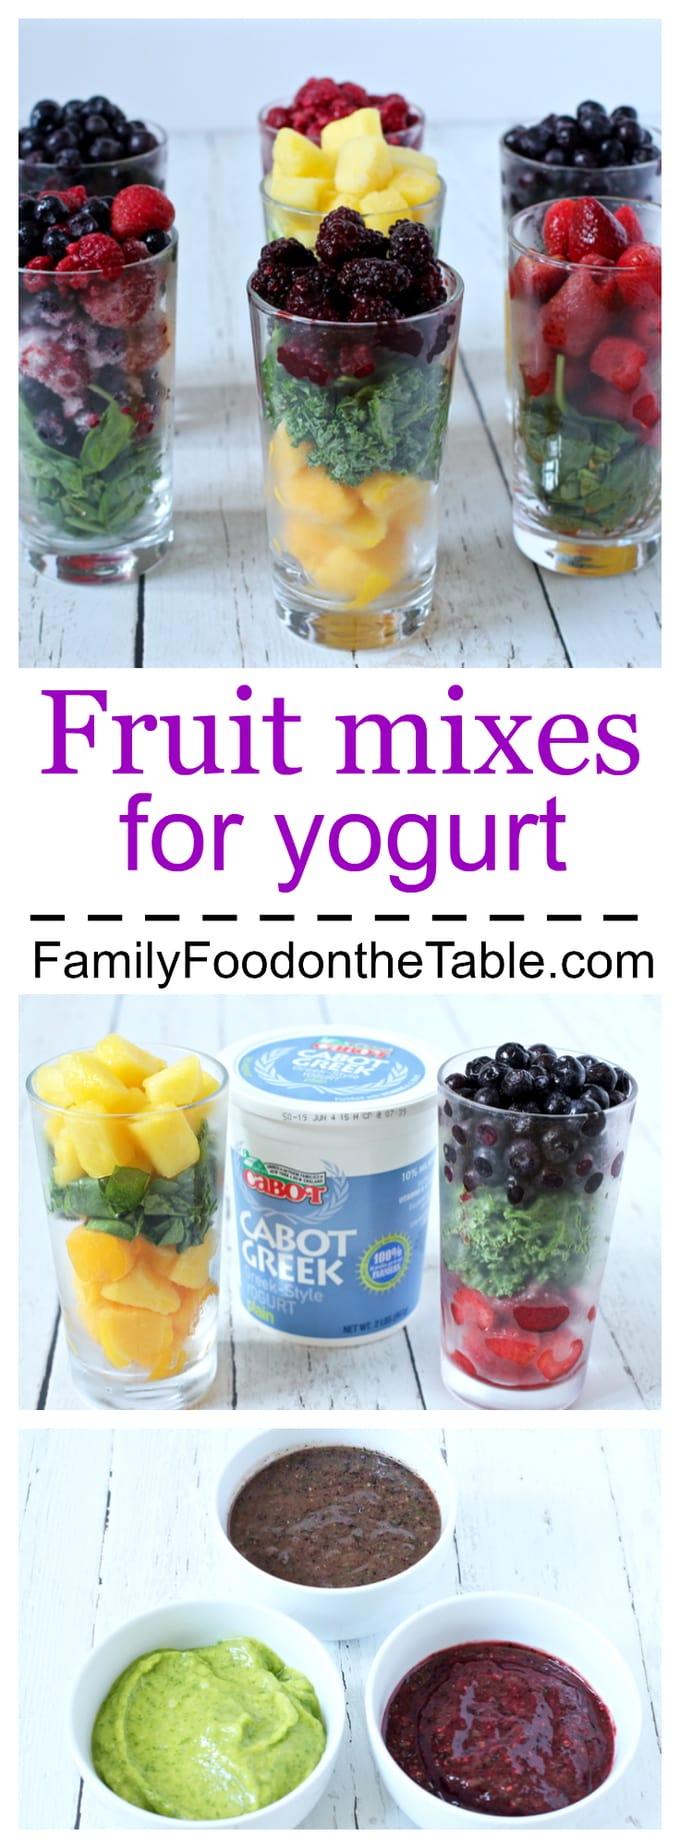 Homemade fruit mixes for yogurt (with kale or spinach) - great for babies and kids!   FamilyFoodontheTable.com